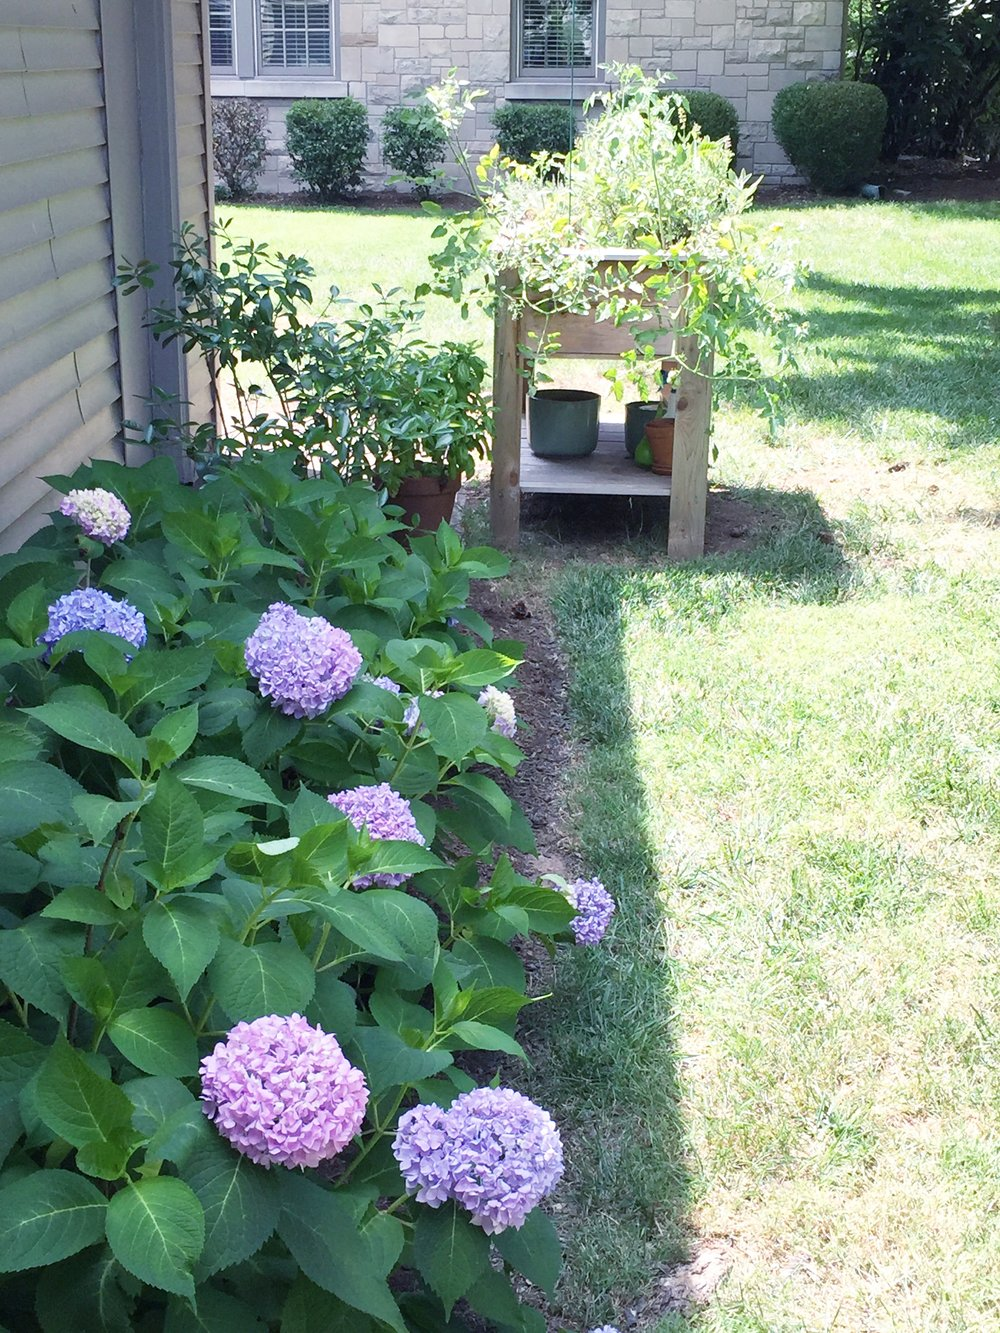 A quick snap of one of my favorite spots in our backyard on the first official day of summer. I love that the hydrangeas are starting to bloom!